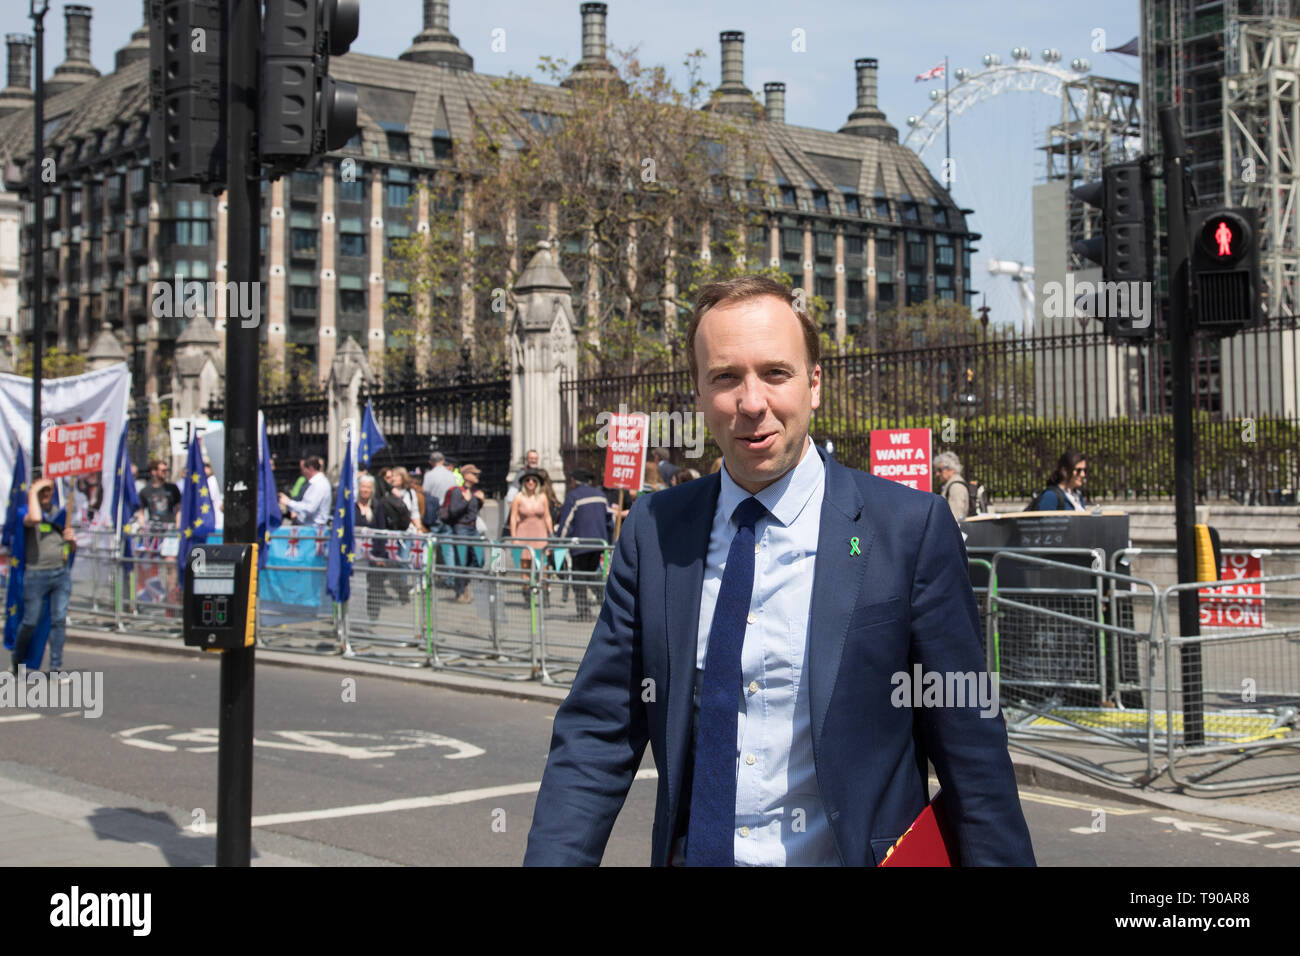 London, UK. 15 May 2019. Pro-Brexit protesters chase after Matt Hancock, Secretary of State for Health and Social Care as he leaves the Commons, Westminster. The Prime Minister faces Question Time in the Commons. - Stock Image